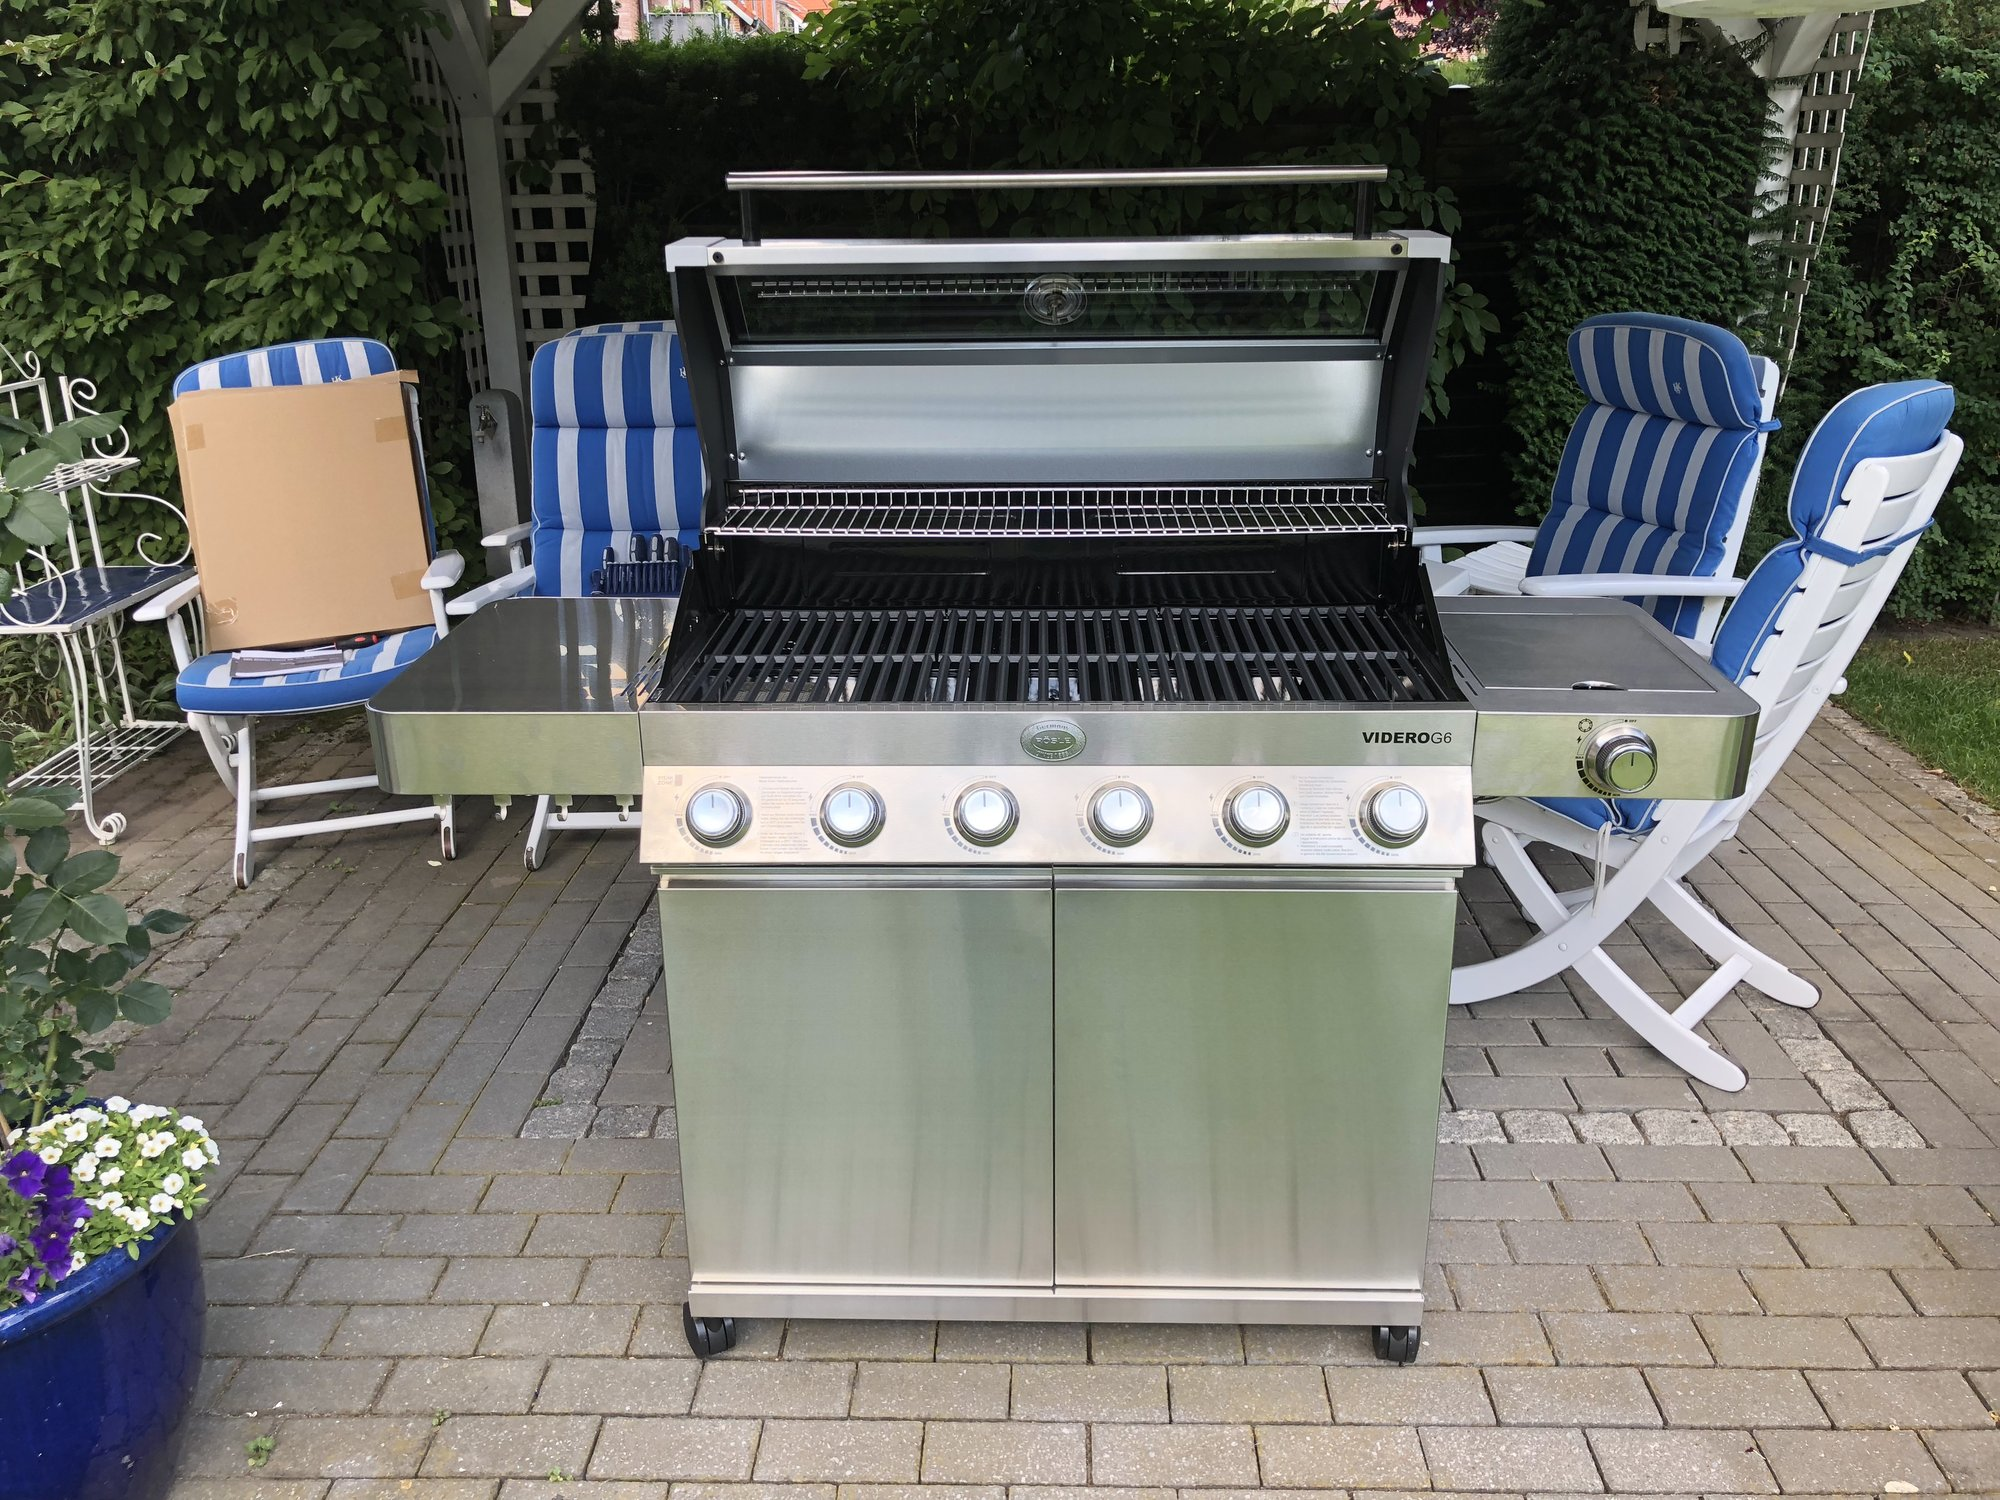 Rösle Gasgrill G6 : Roesle gasgrill videro g anthrazit